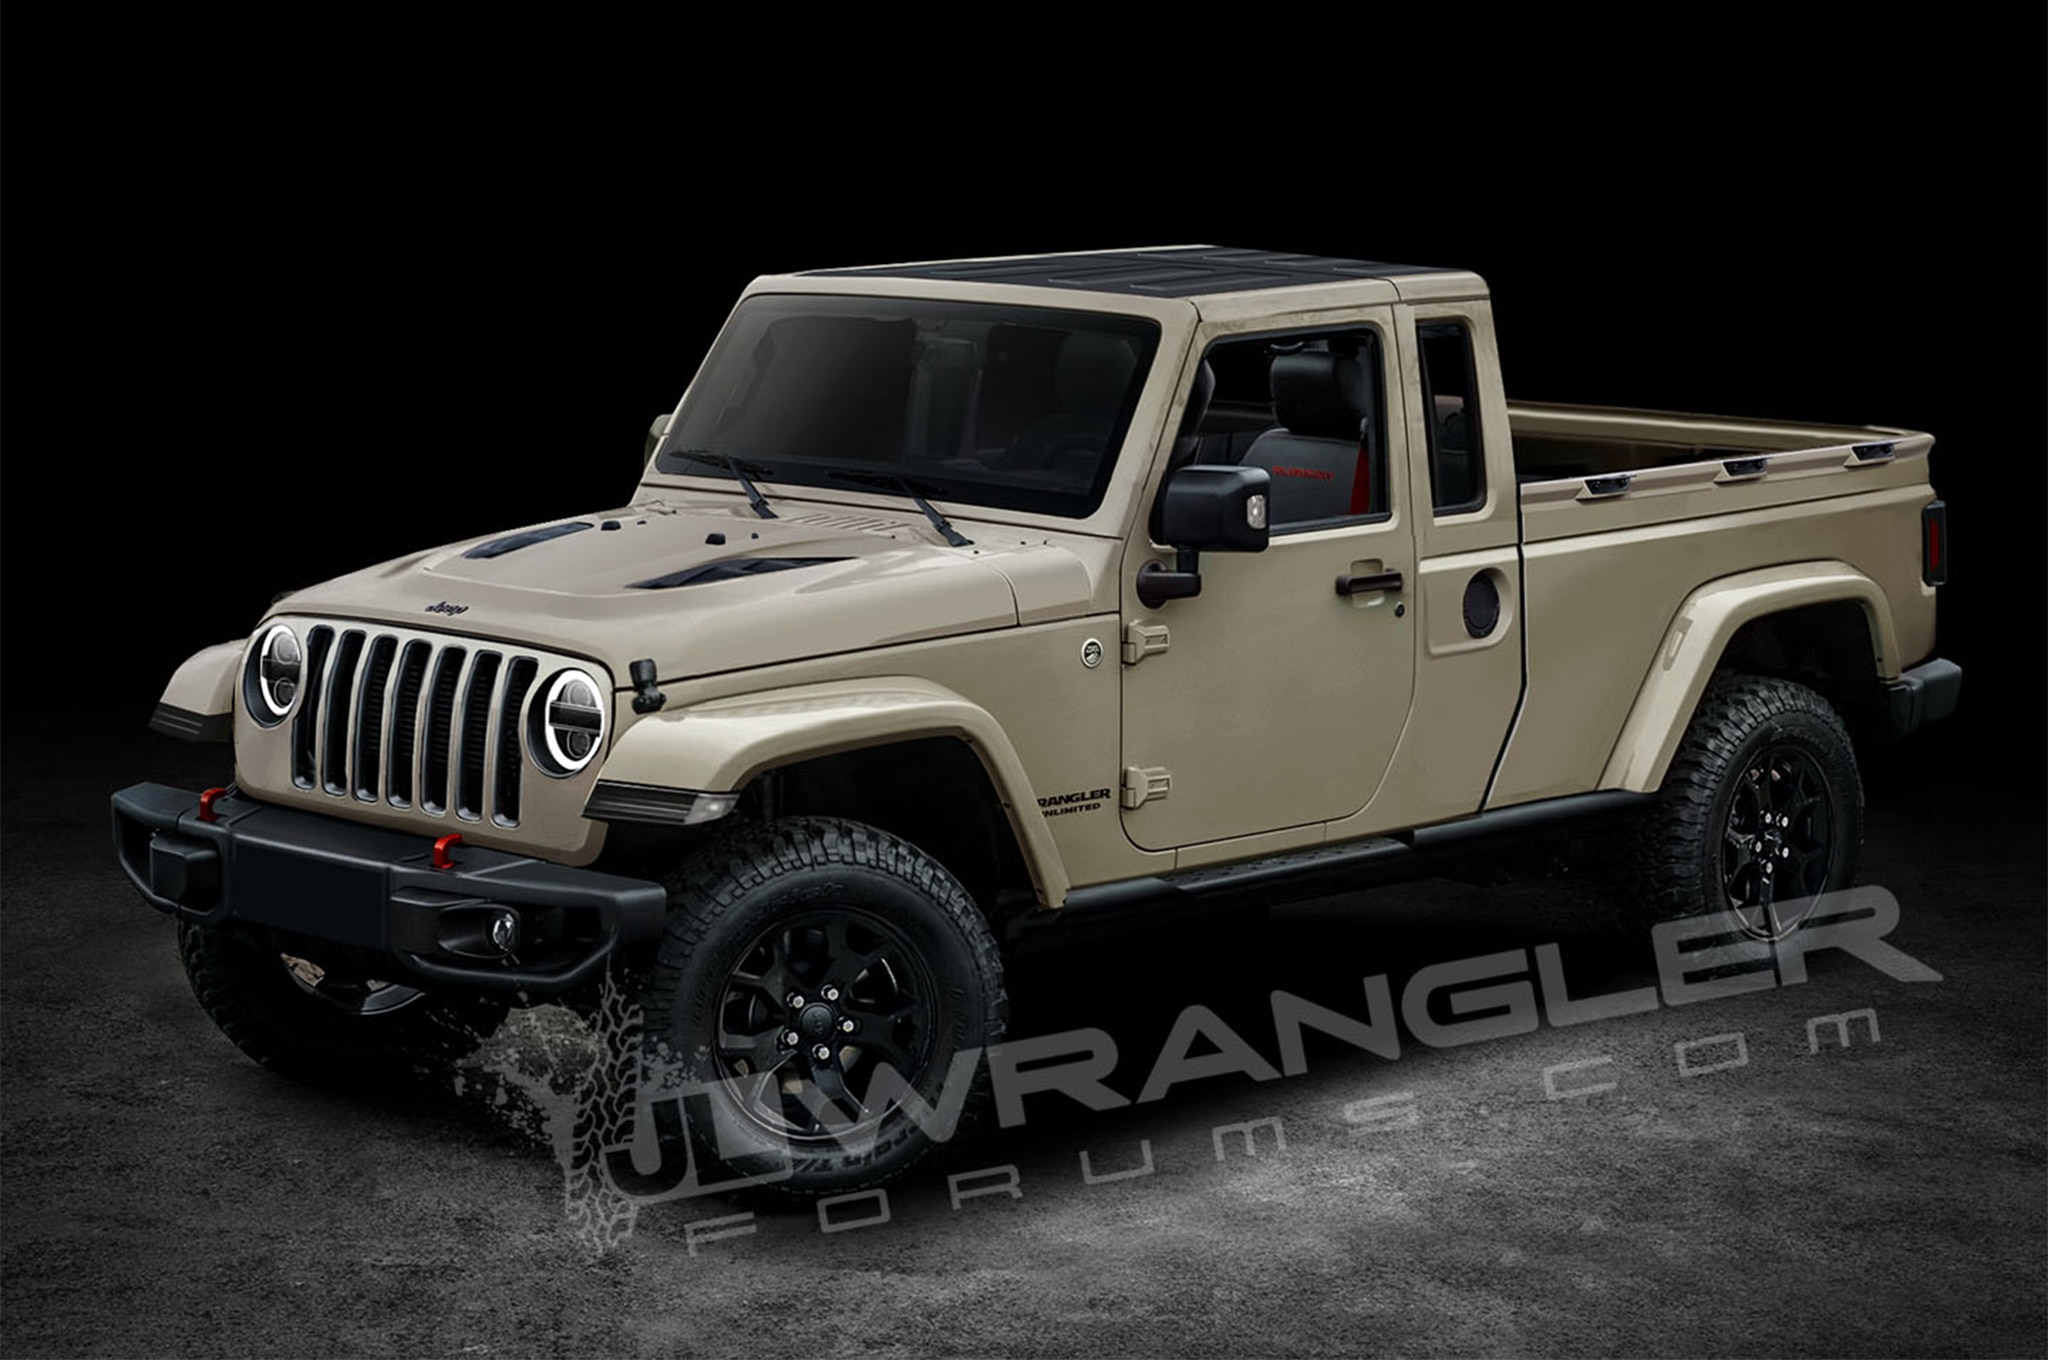 Jeep Wrangler Pickup Truck 2017 >> Is This the Next-Generation Jeep Wrangler Pickup? | Automobile Magazine